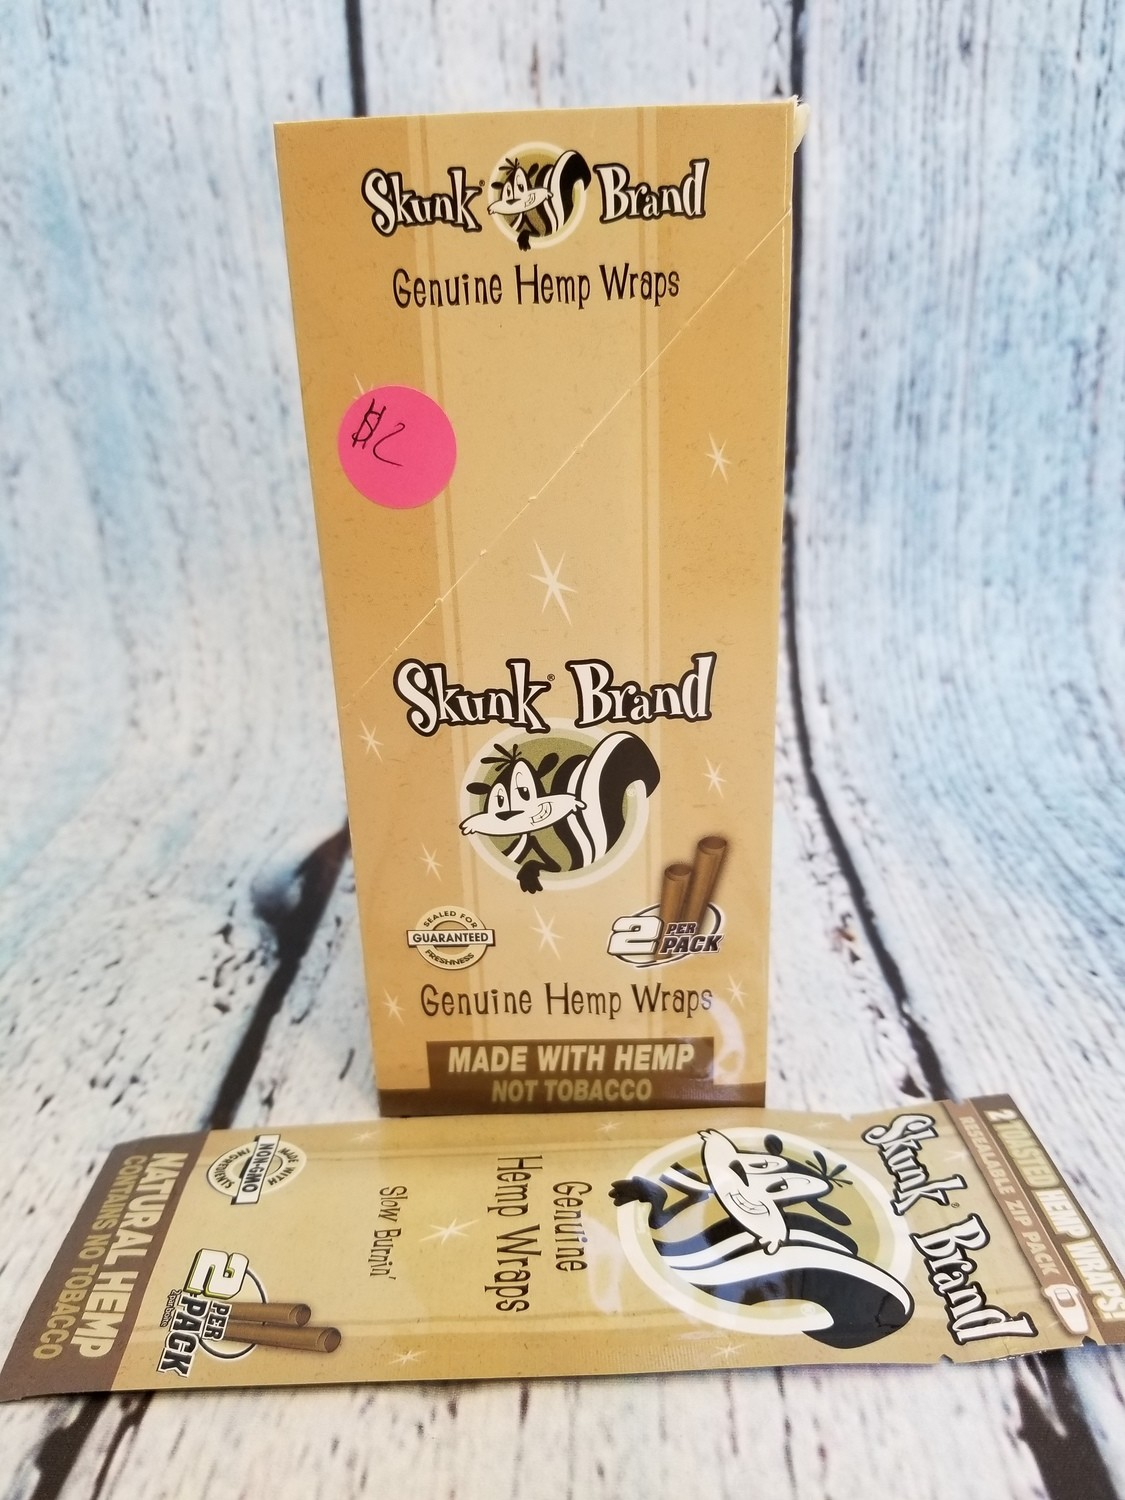 SKUNK BRAND NATURAL HEMP WRAPS